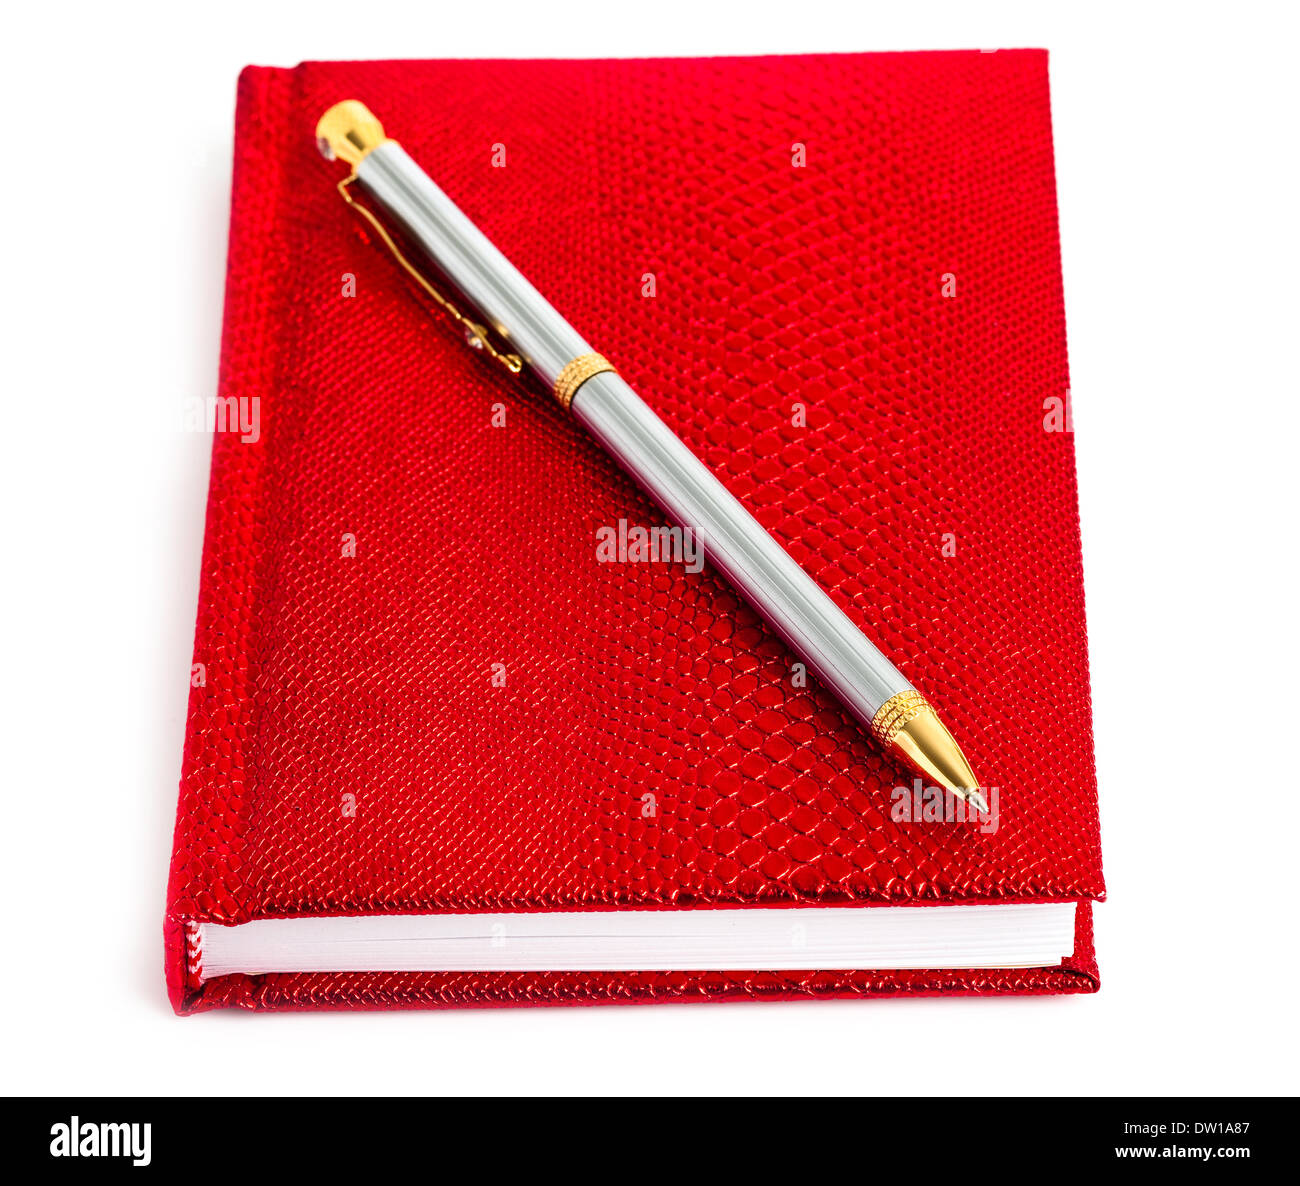 red notebook with silver pen - Stock Image